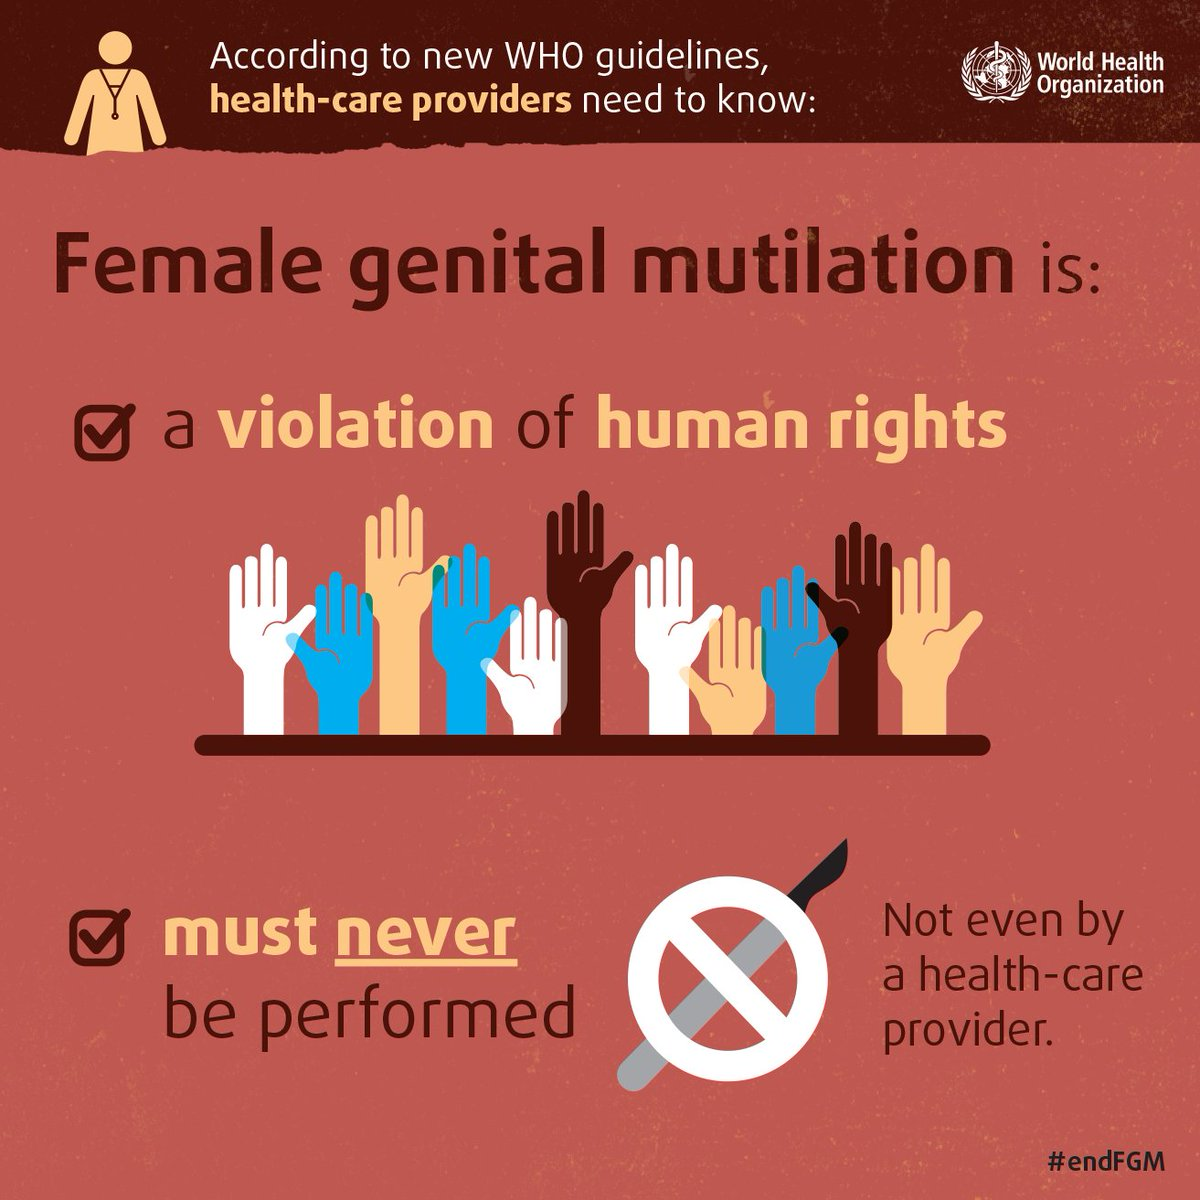 FGM is a violation of human rights. Must never be performed. Not even by a health-care provider.